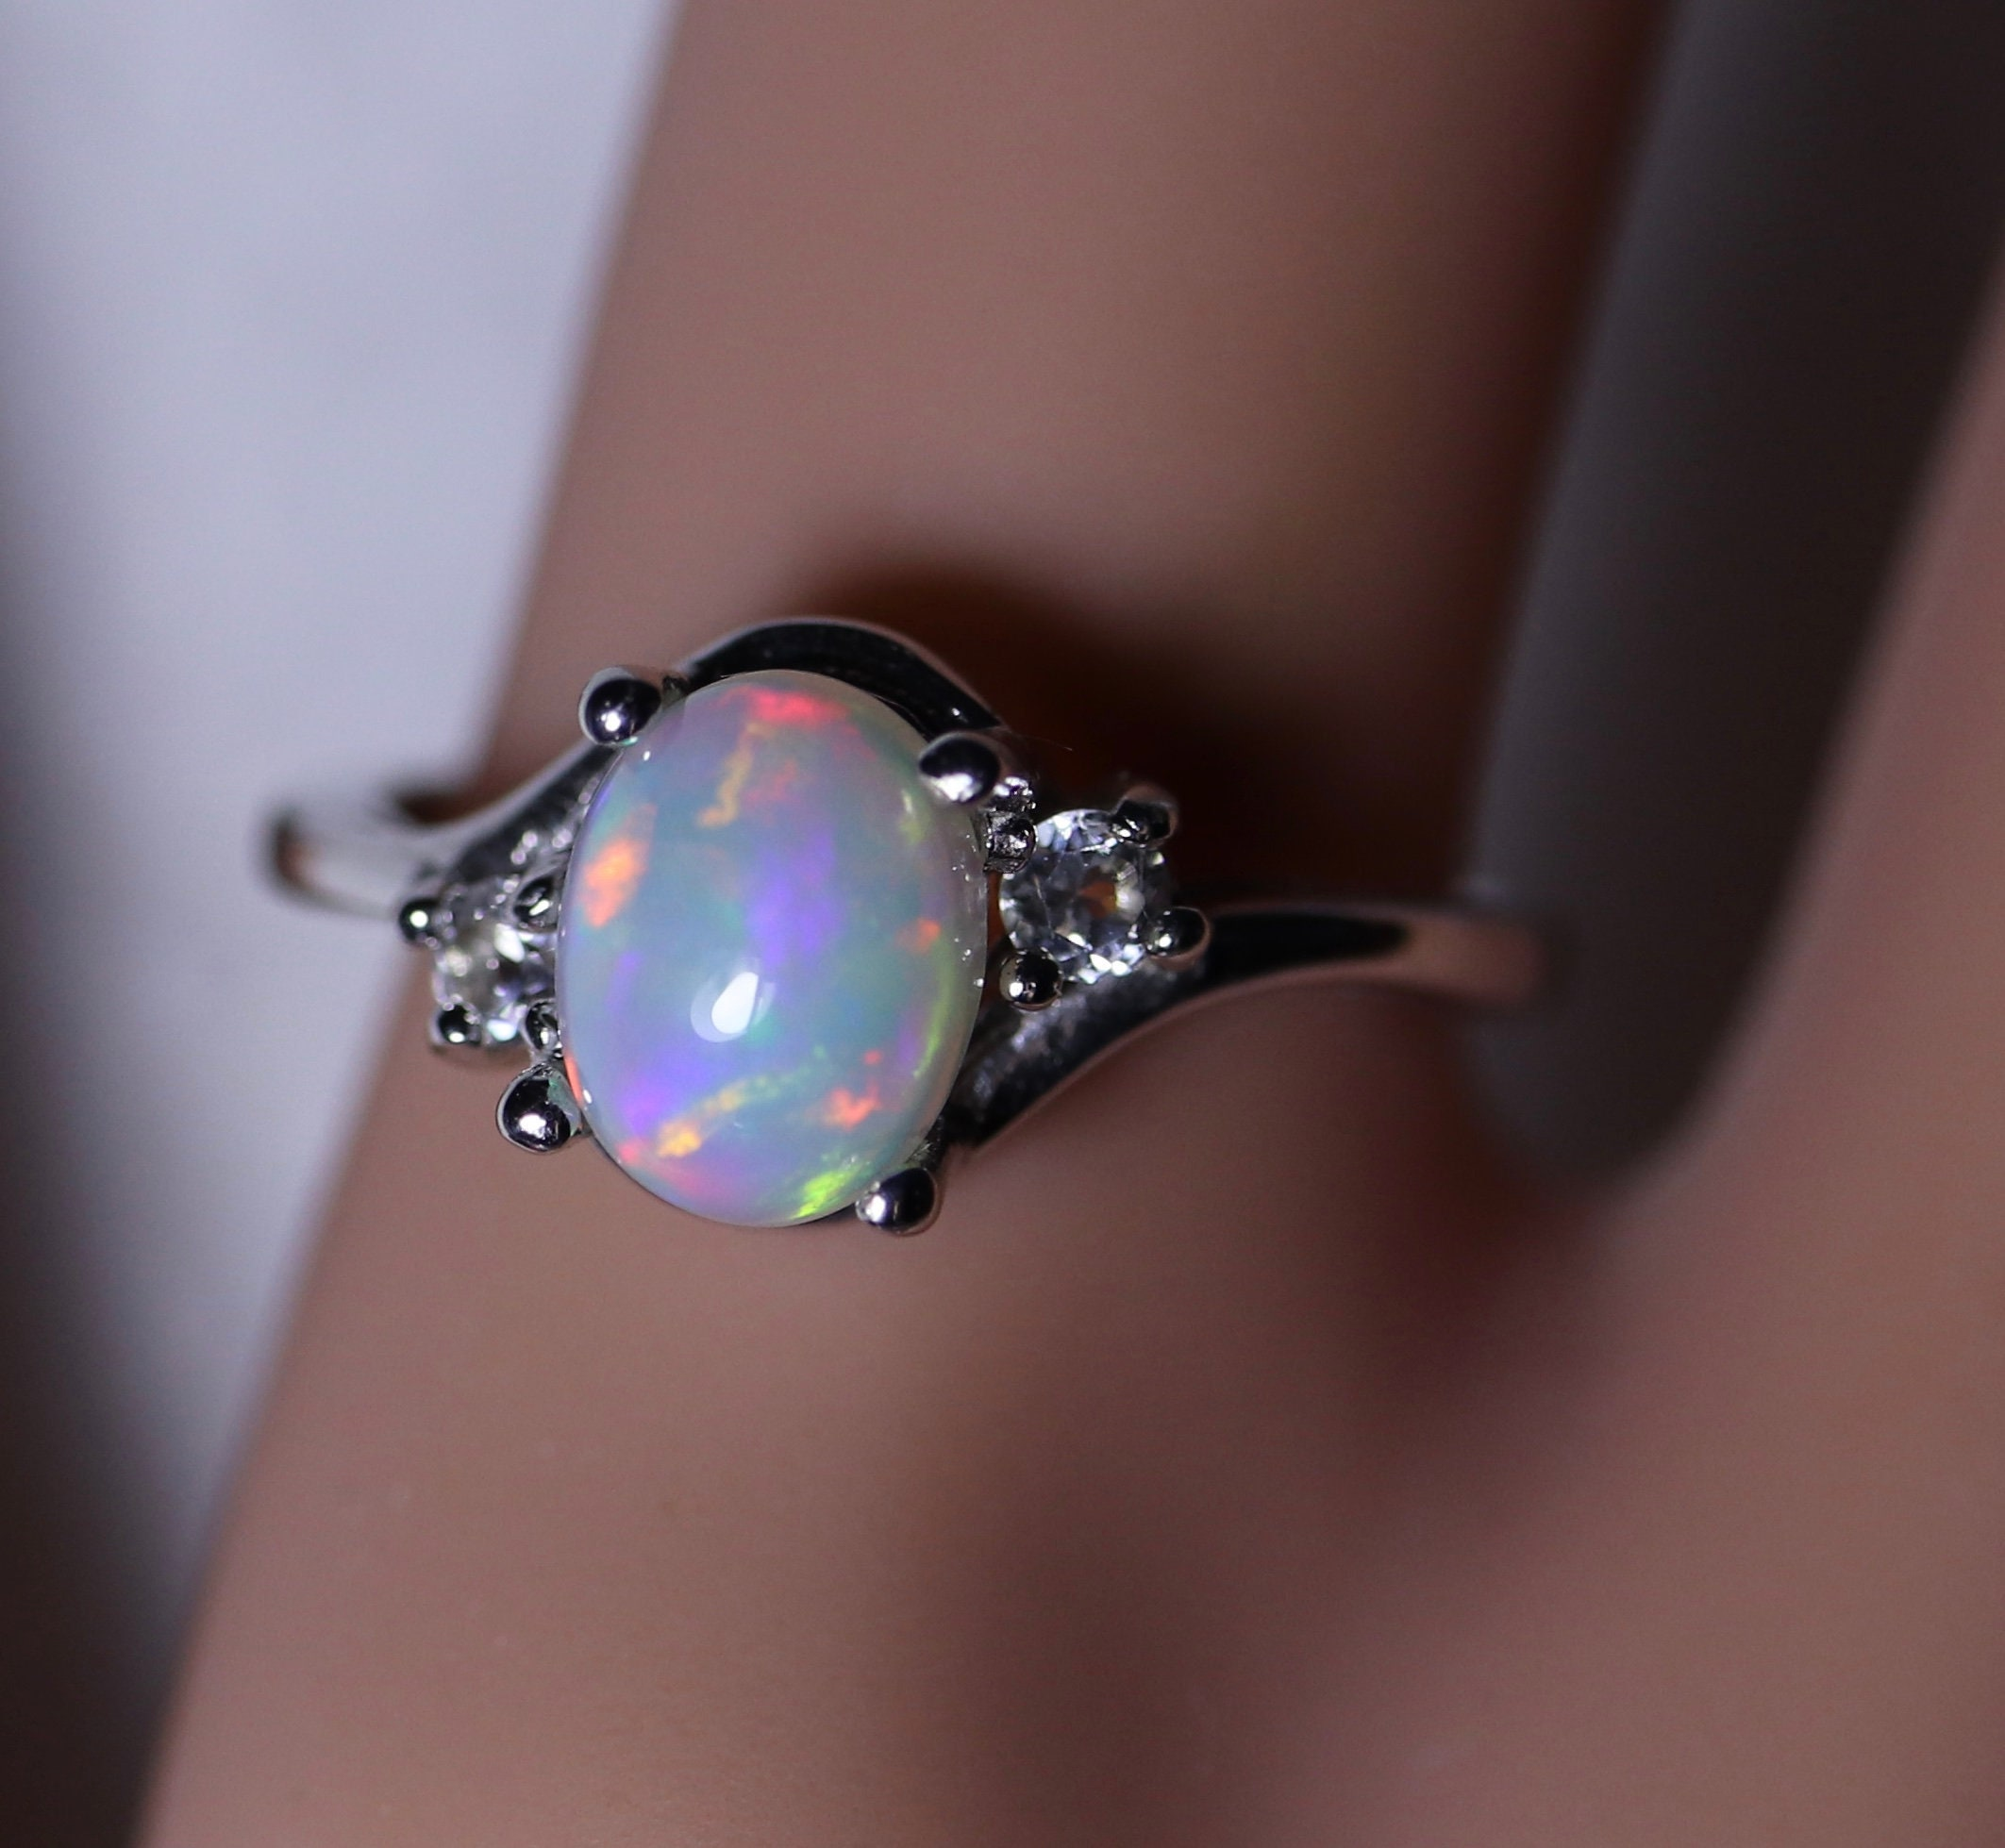 opal ring rainbow opal rings for women gift for her etsy. Black Bedroom Furniture Sets. Home Design Ideas